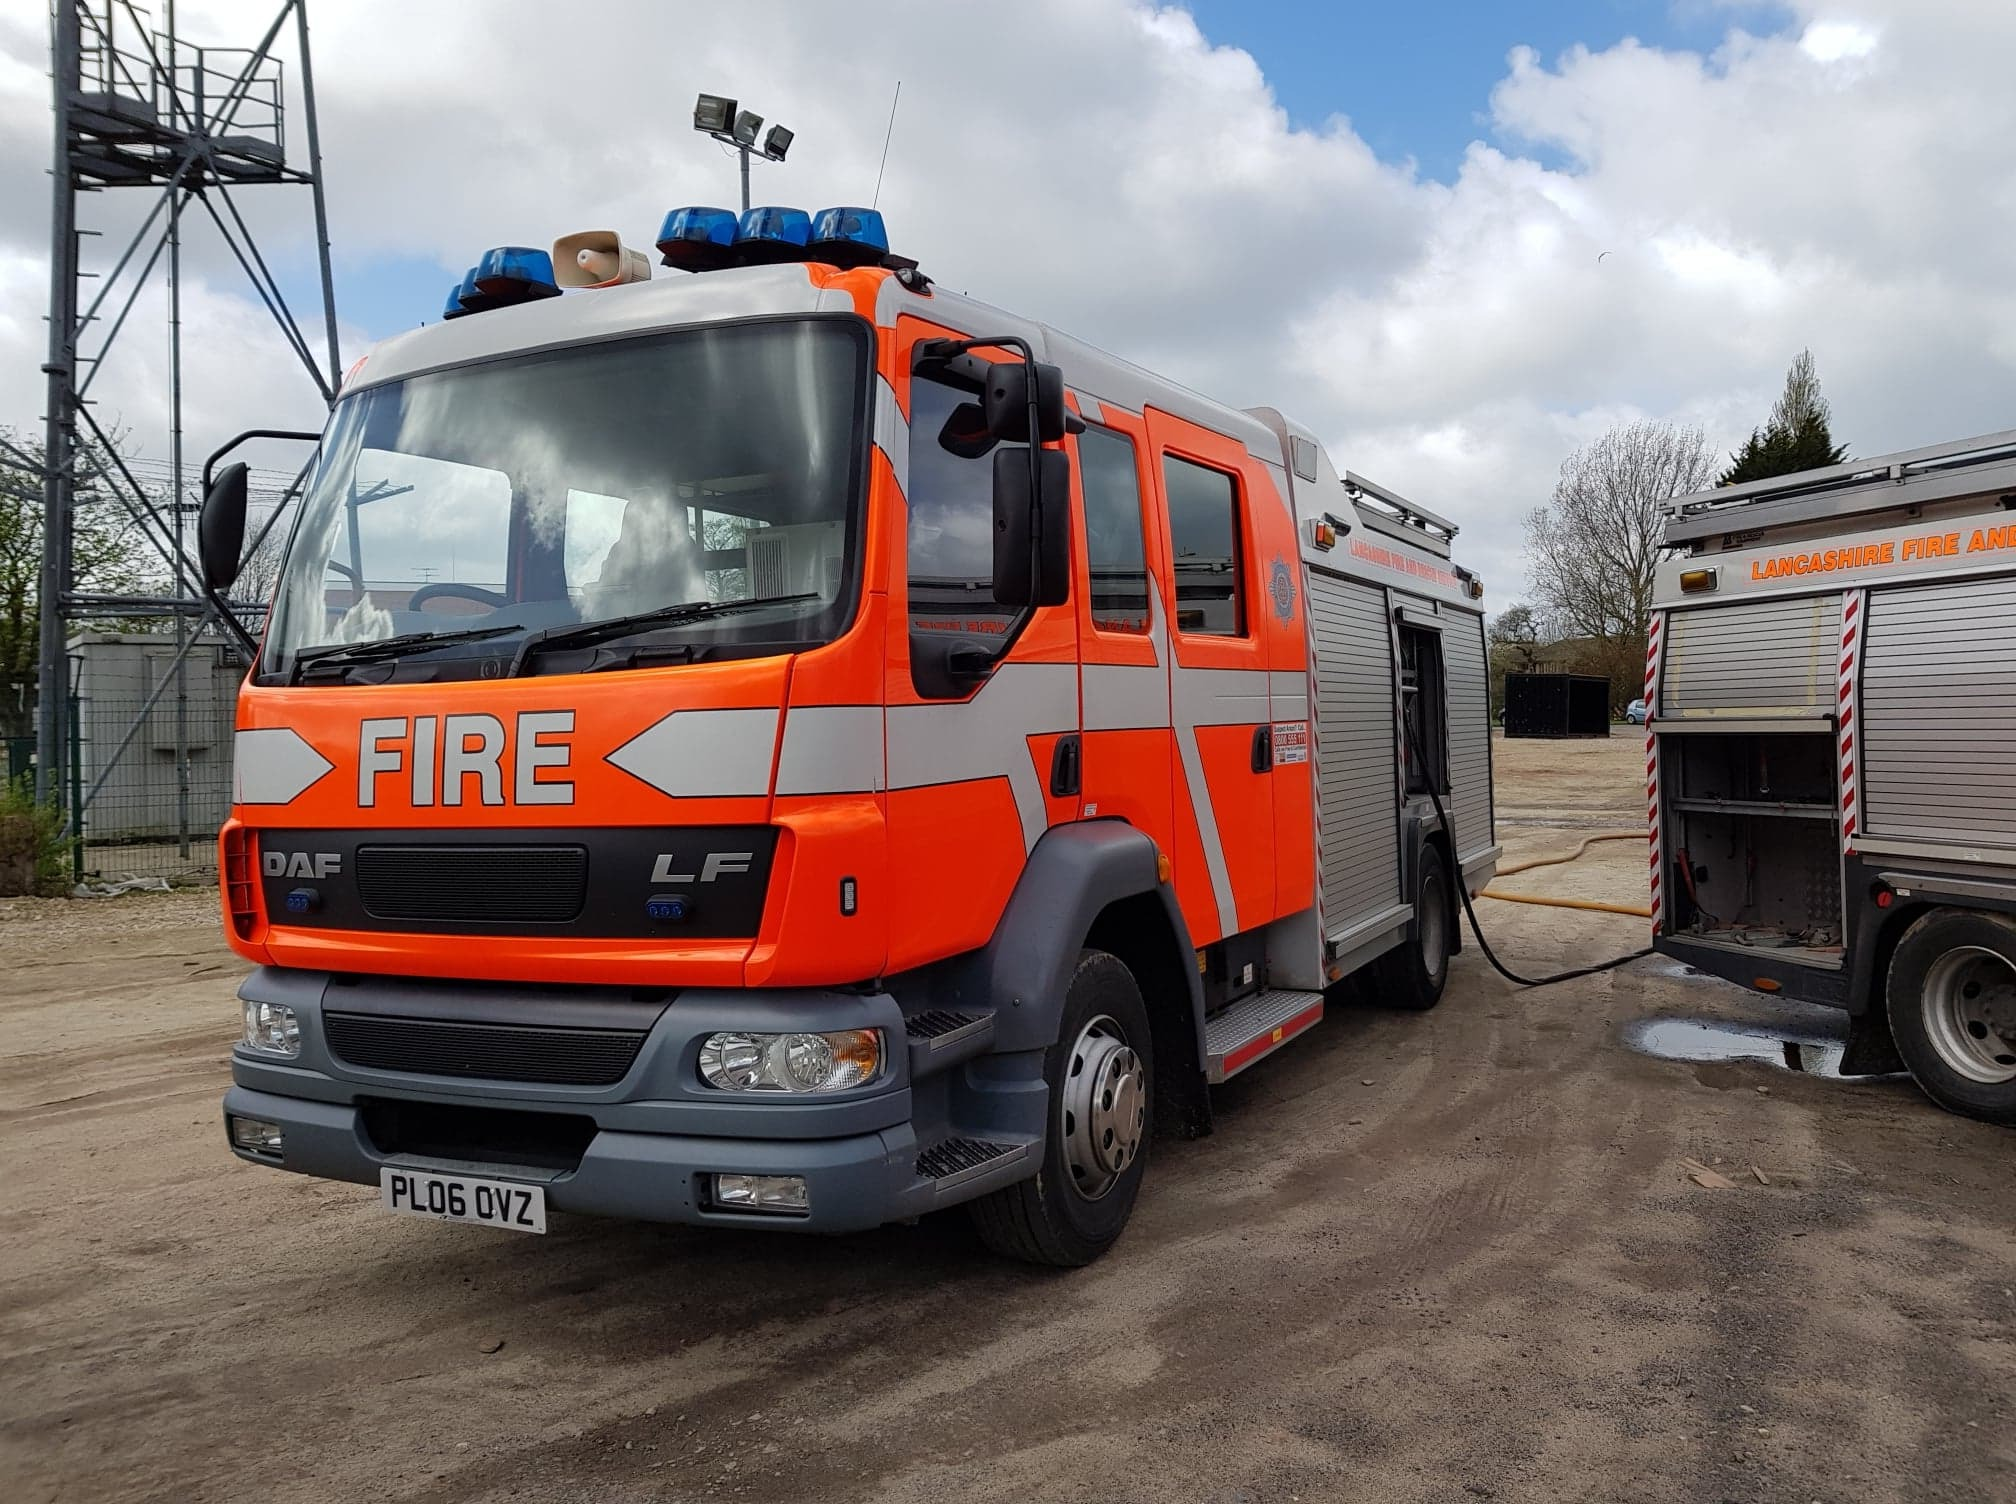 A Lancashire Fire and Rescue Service fire engine